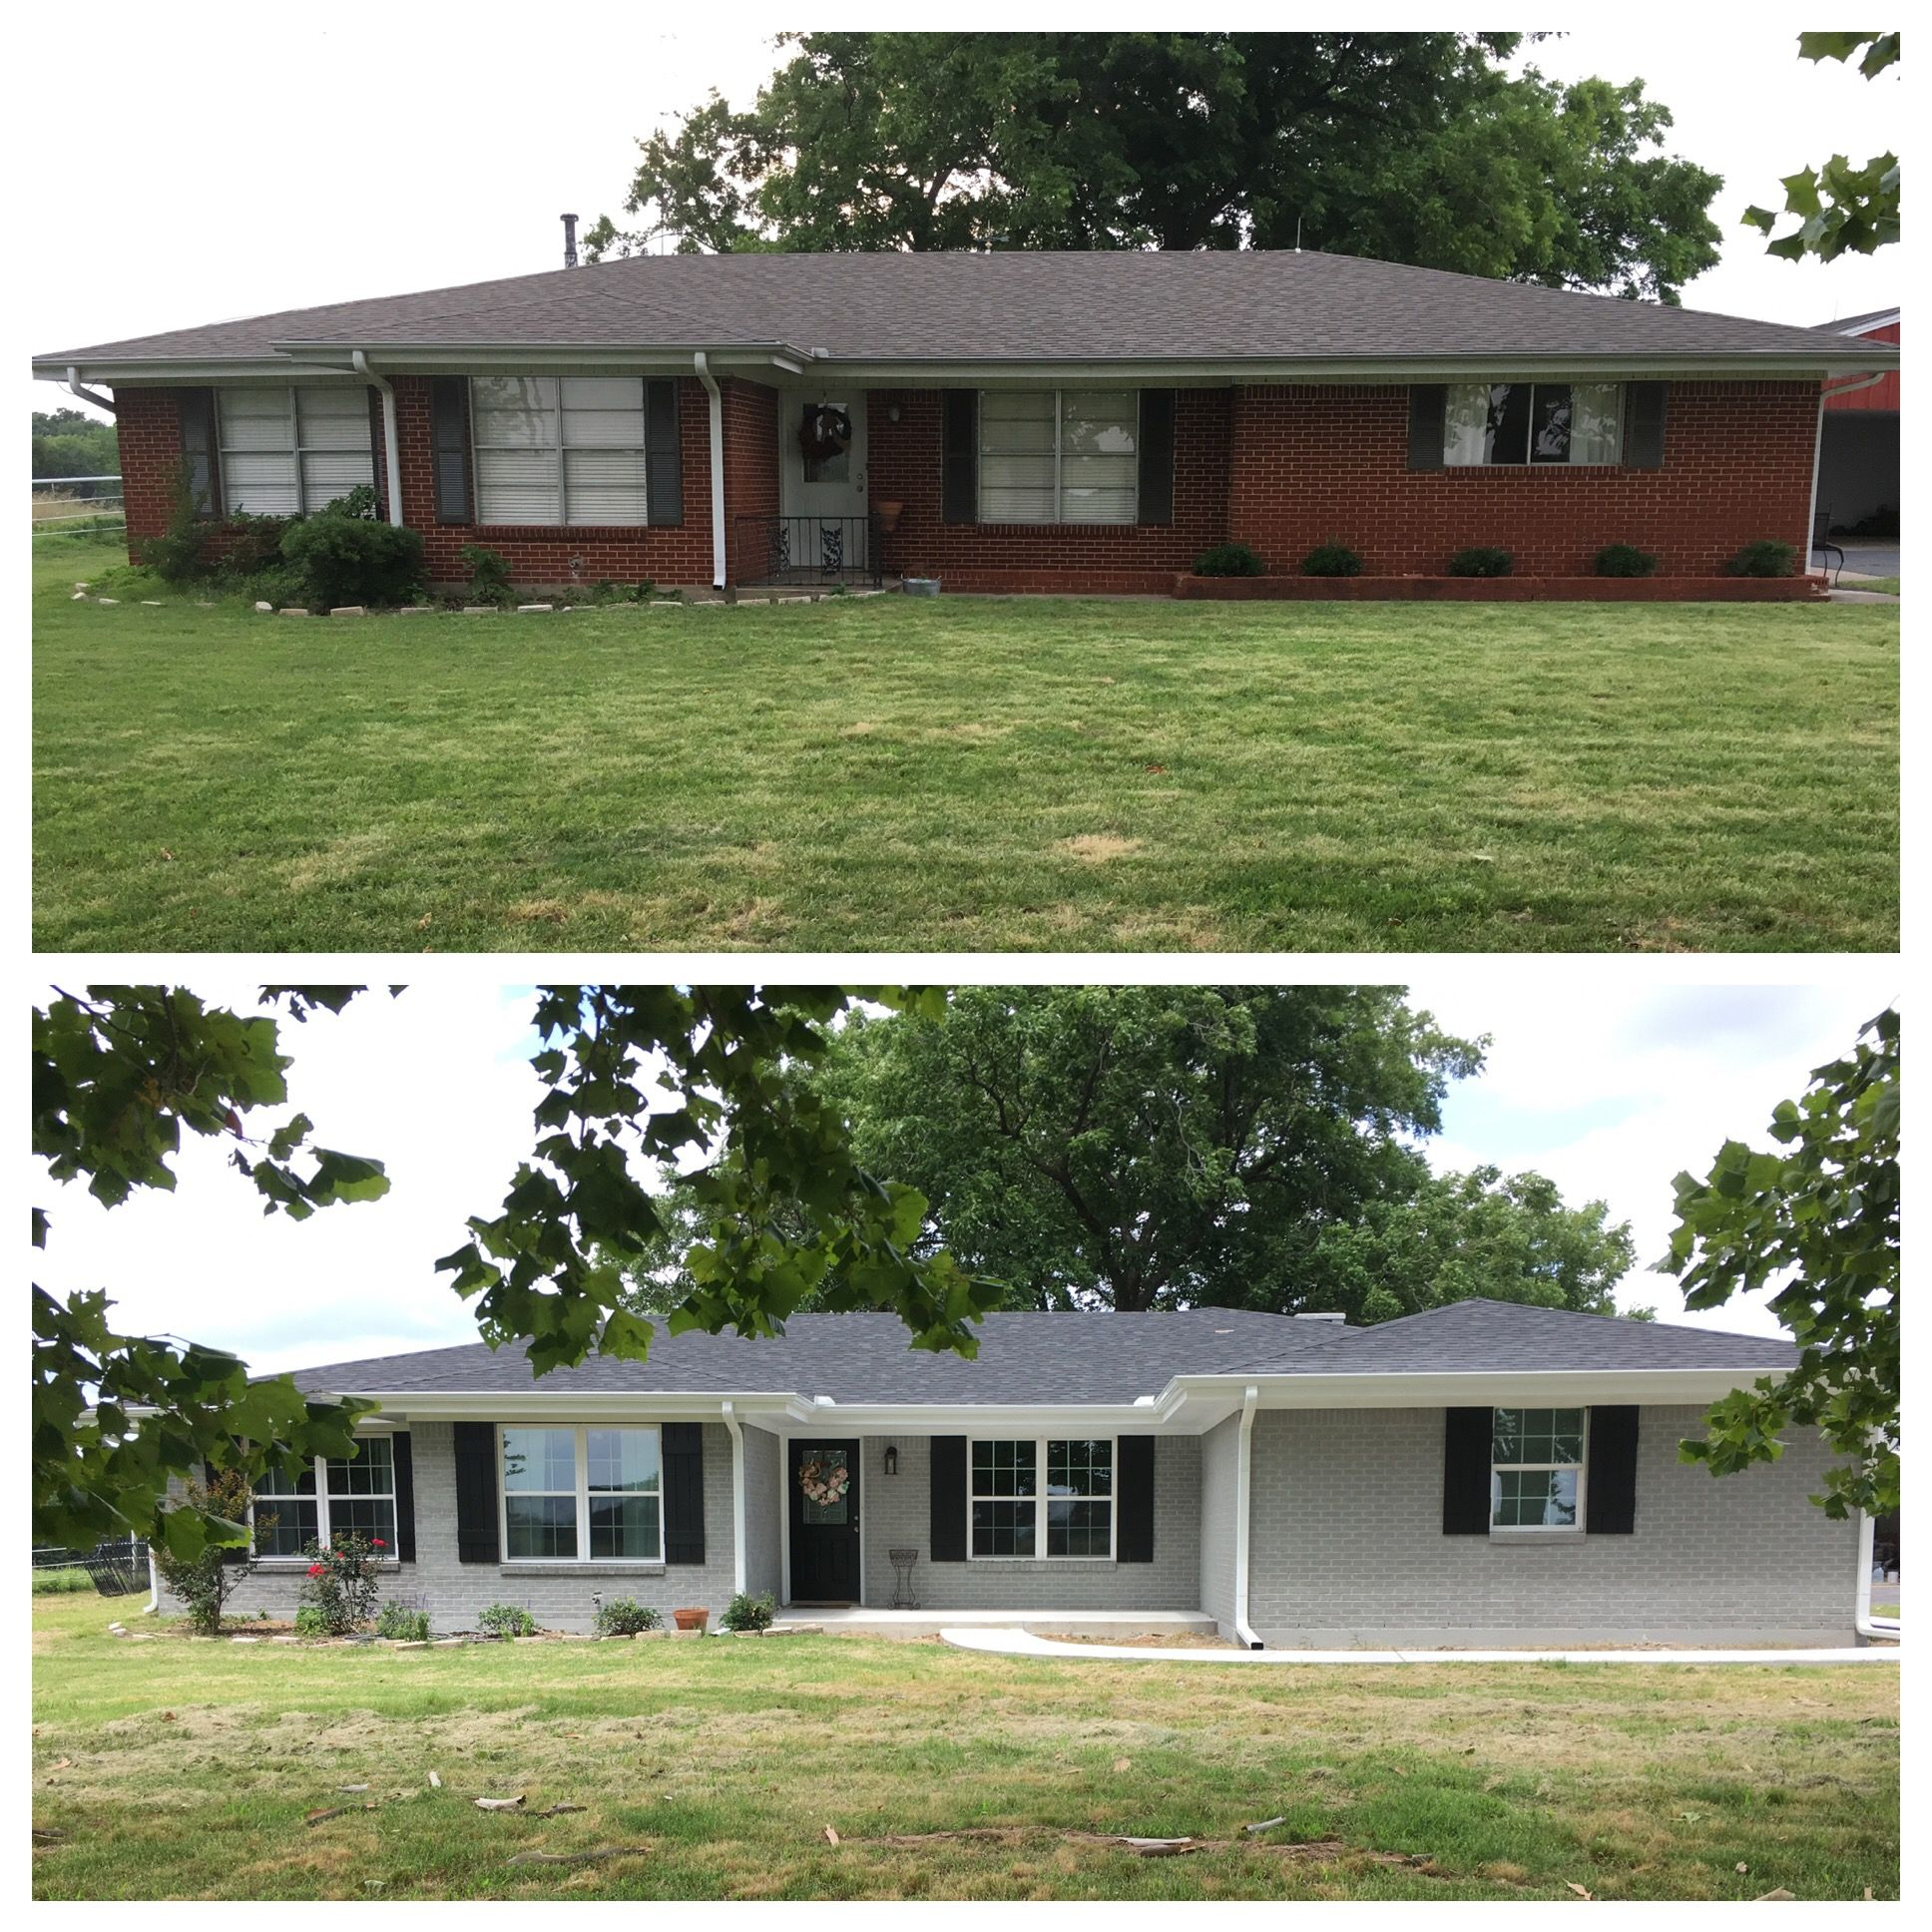 Painted exterior ranch style house before and after added for 70s house exterior makeover australia